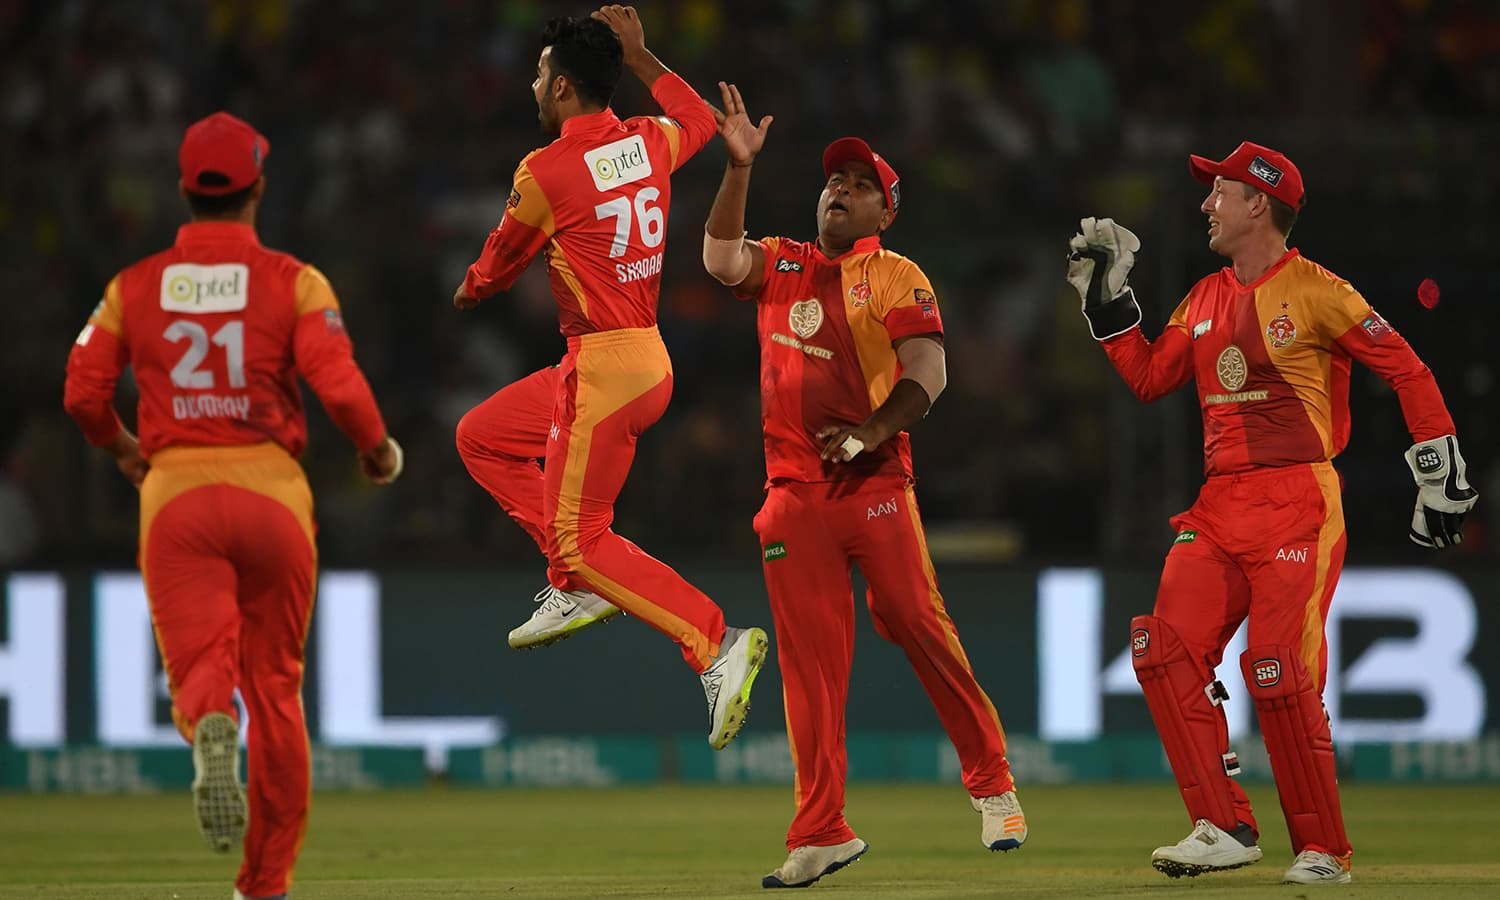 Shadab Khan celebrates with teammates after taking the wicket of Darren Sammy. —AFP